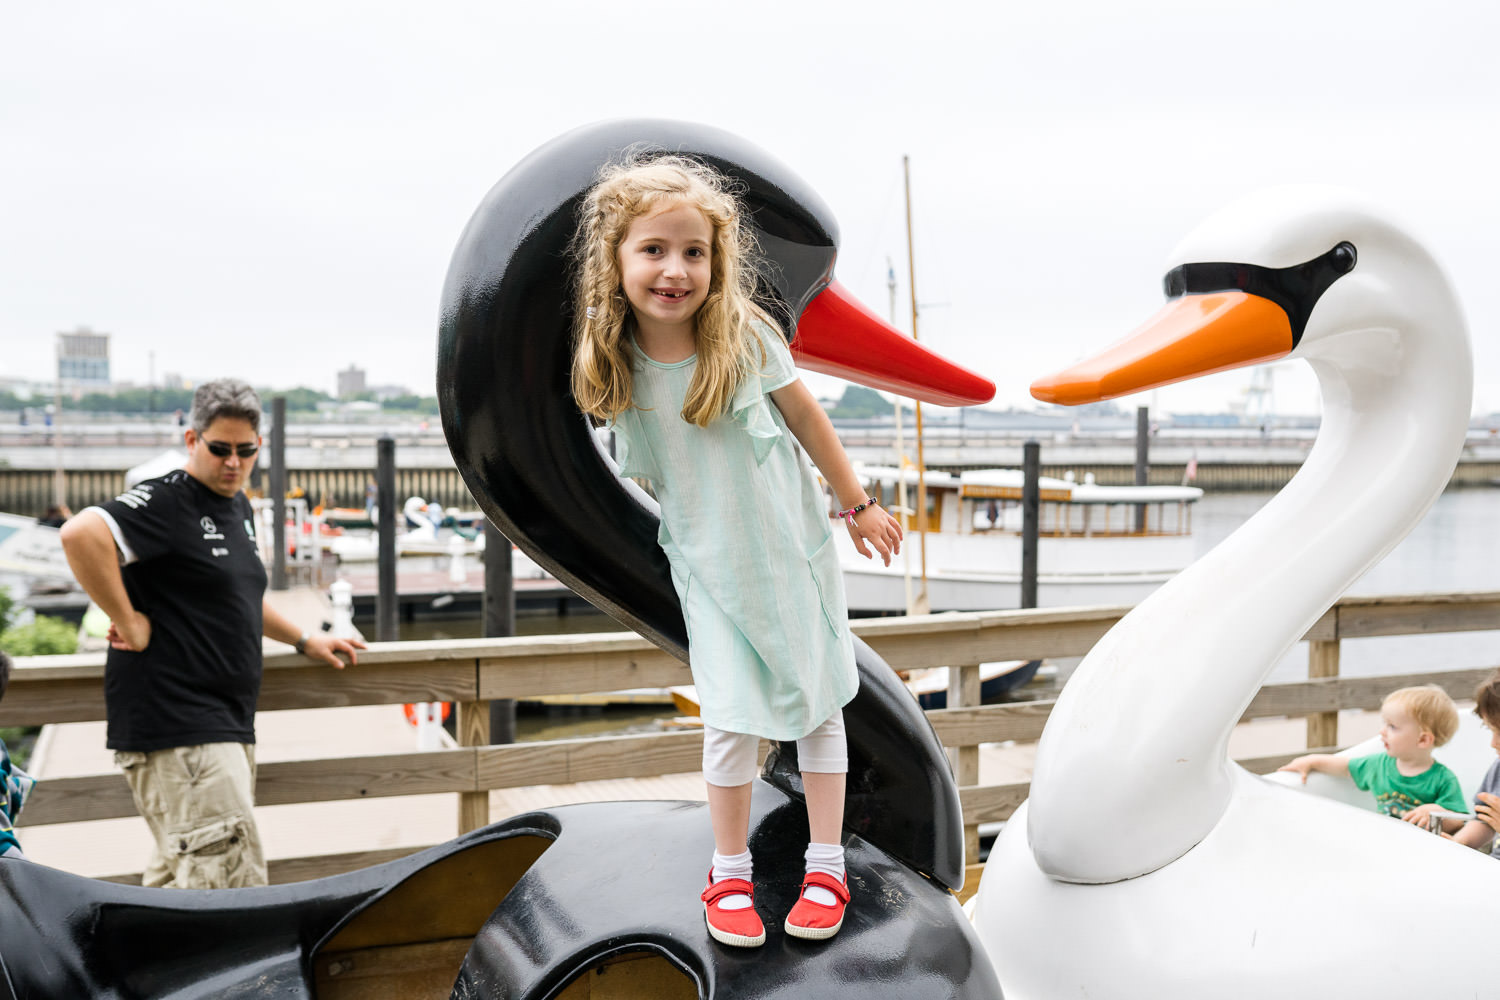 A little girl stands on some swan boats on a pier.